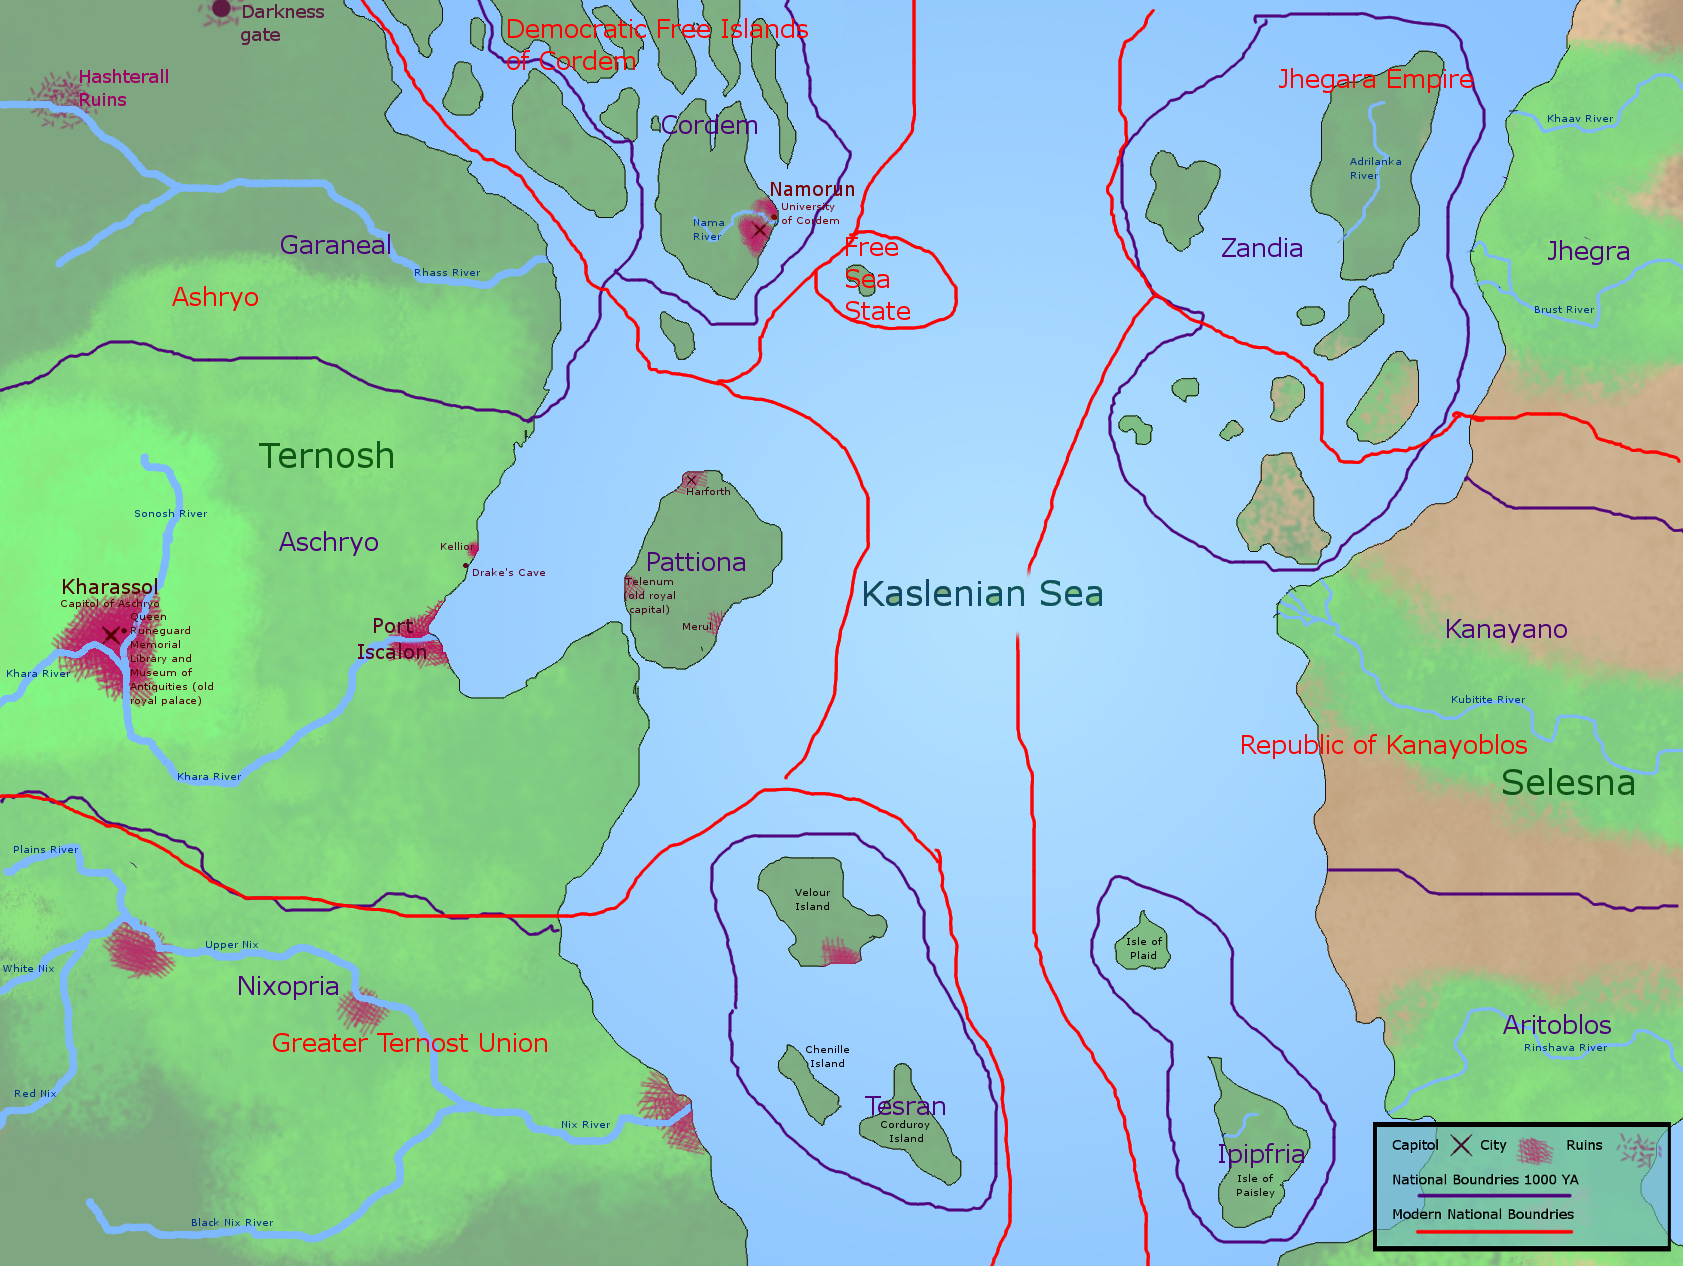 Map of Kaslenian Sea Region V2 by persephone-the-fish